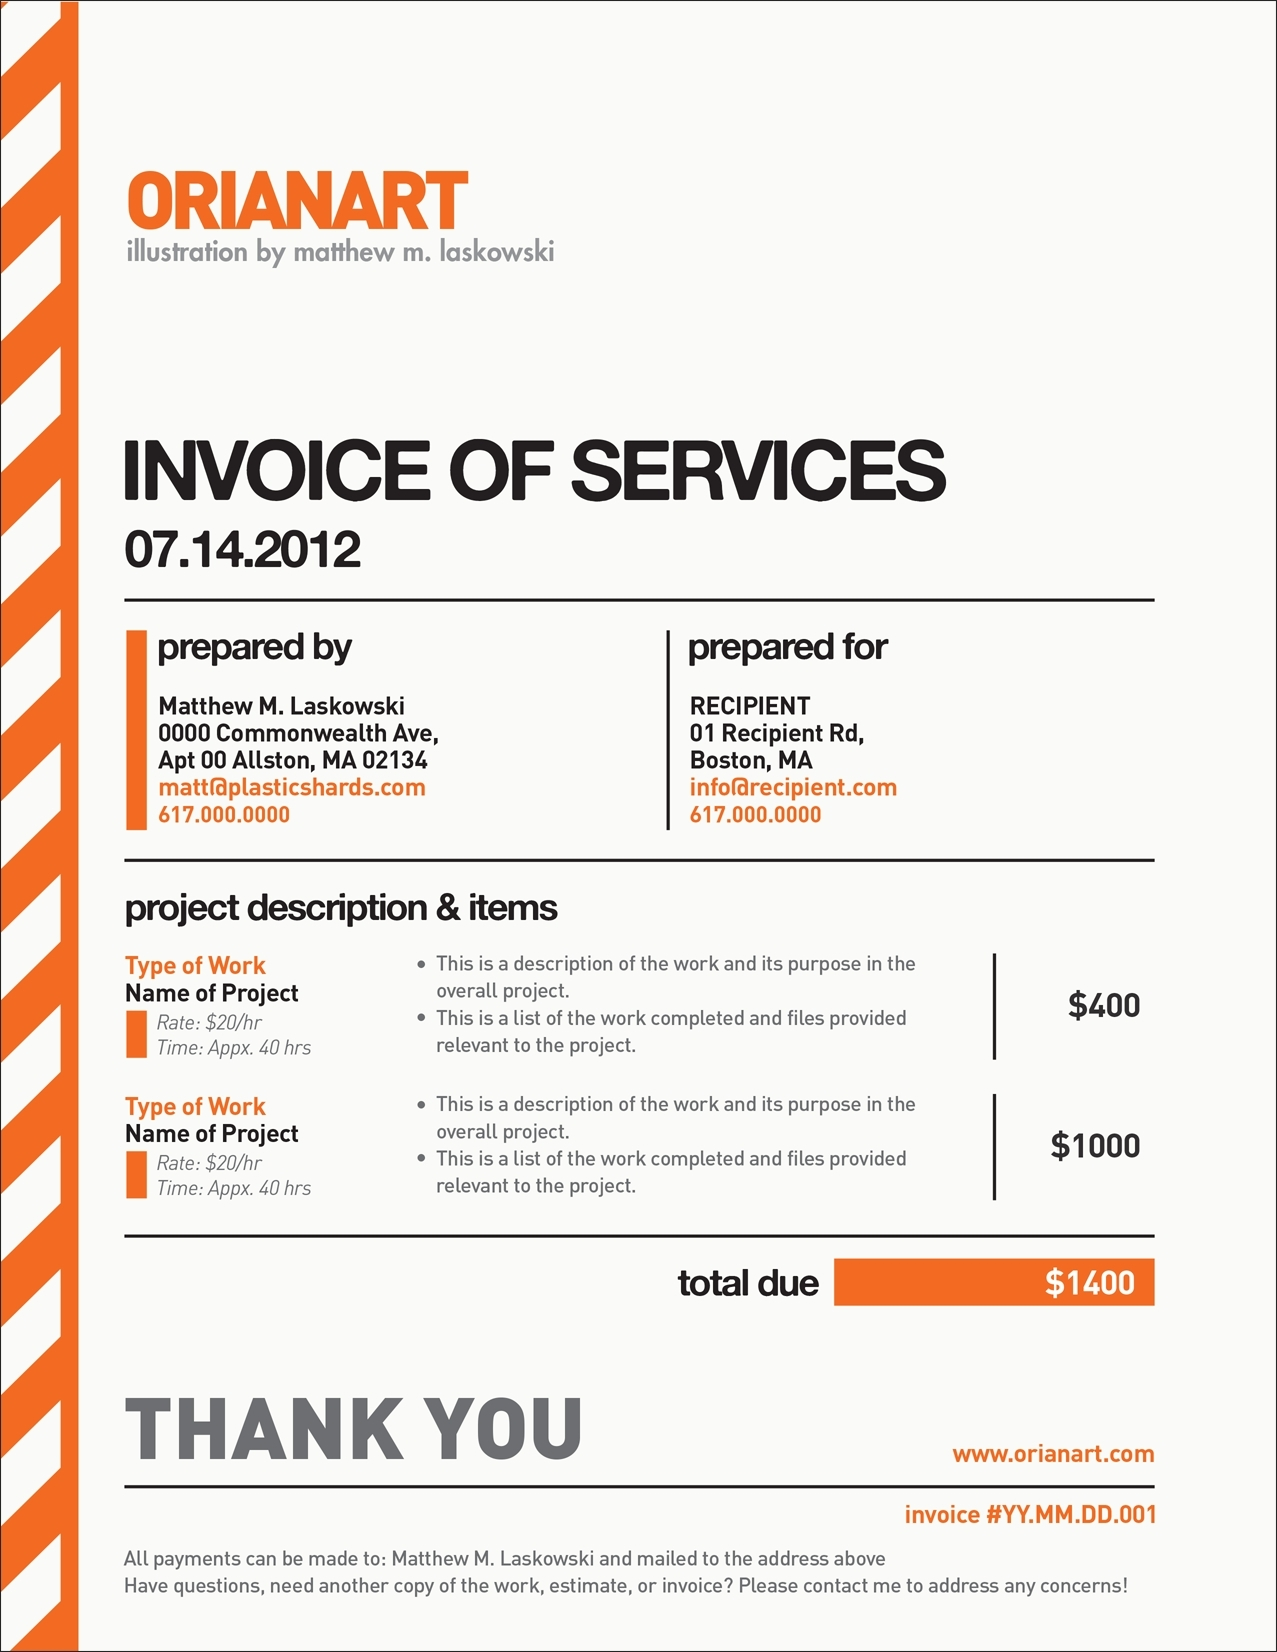 cool invoice designs invoice template ideas cool invoice template